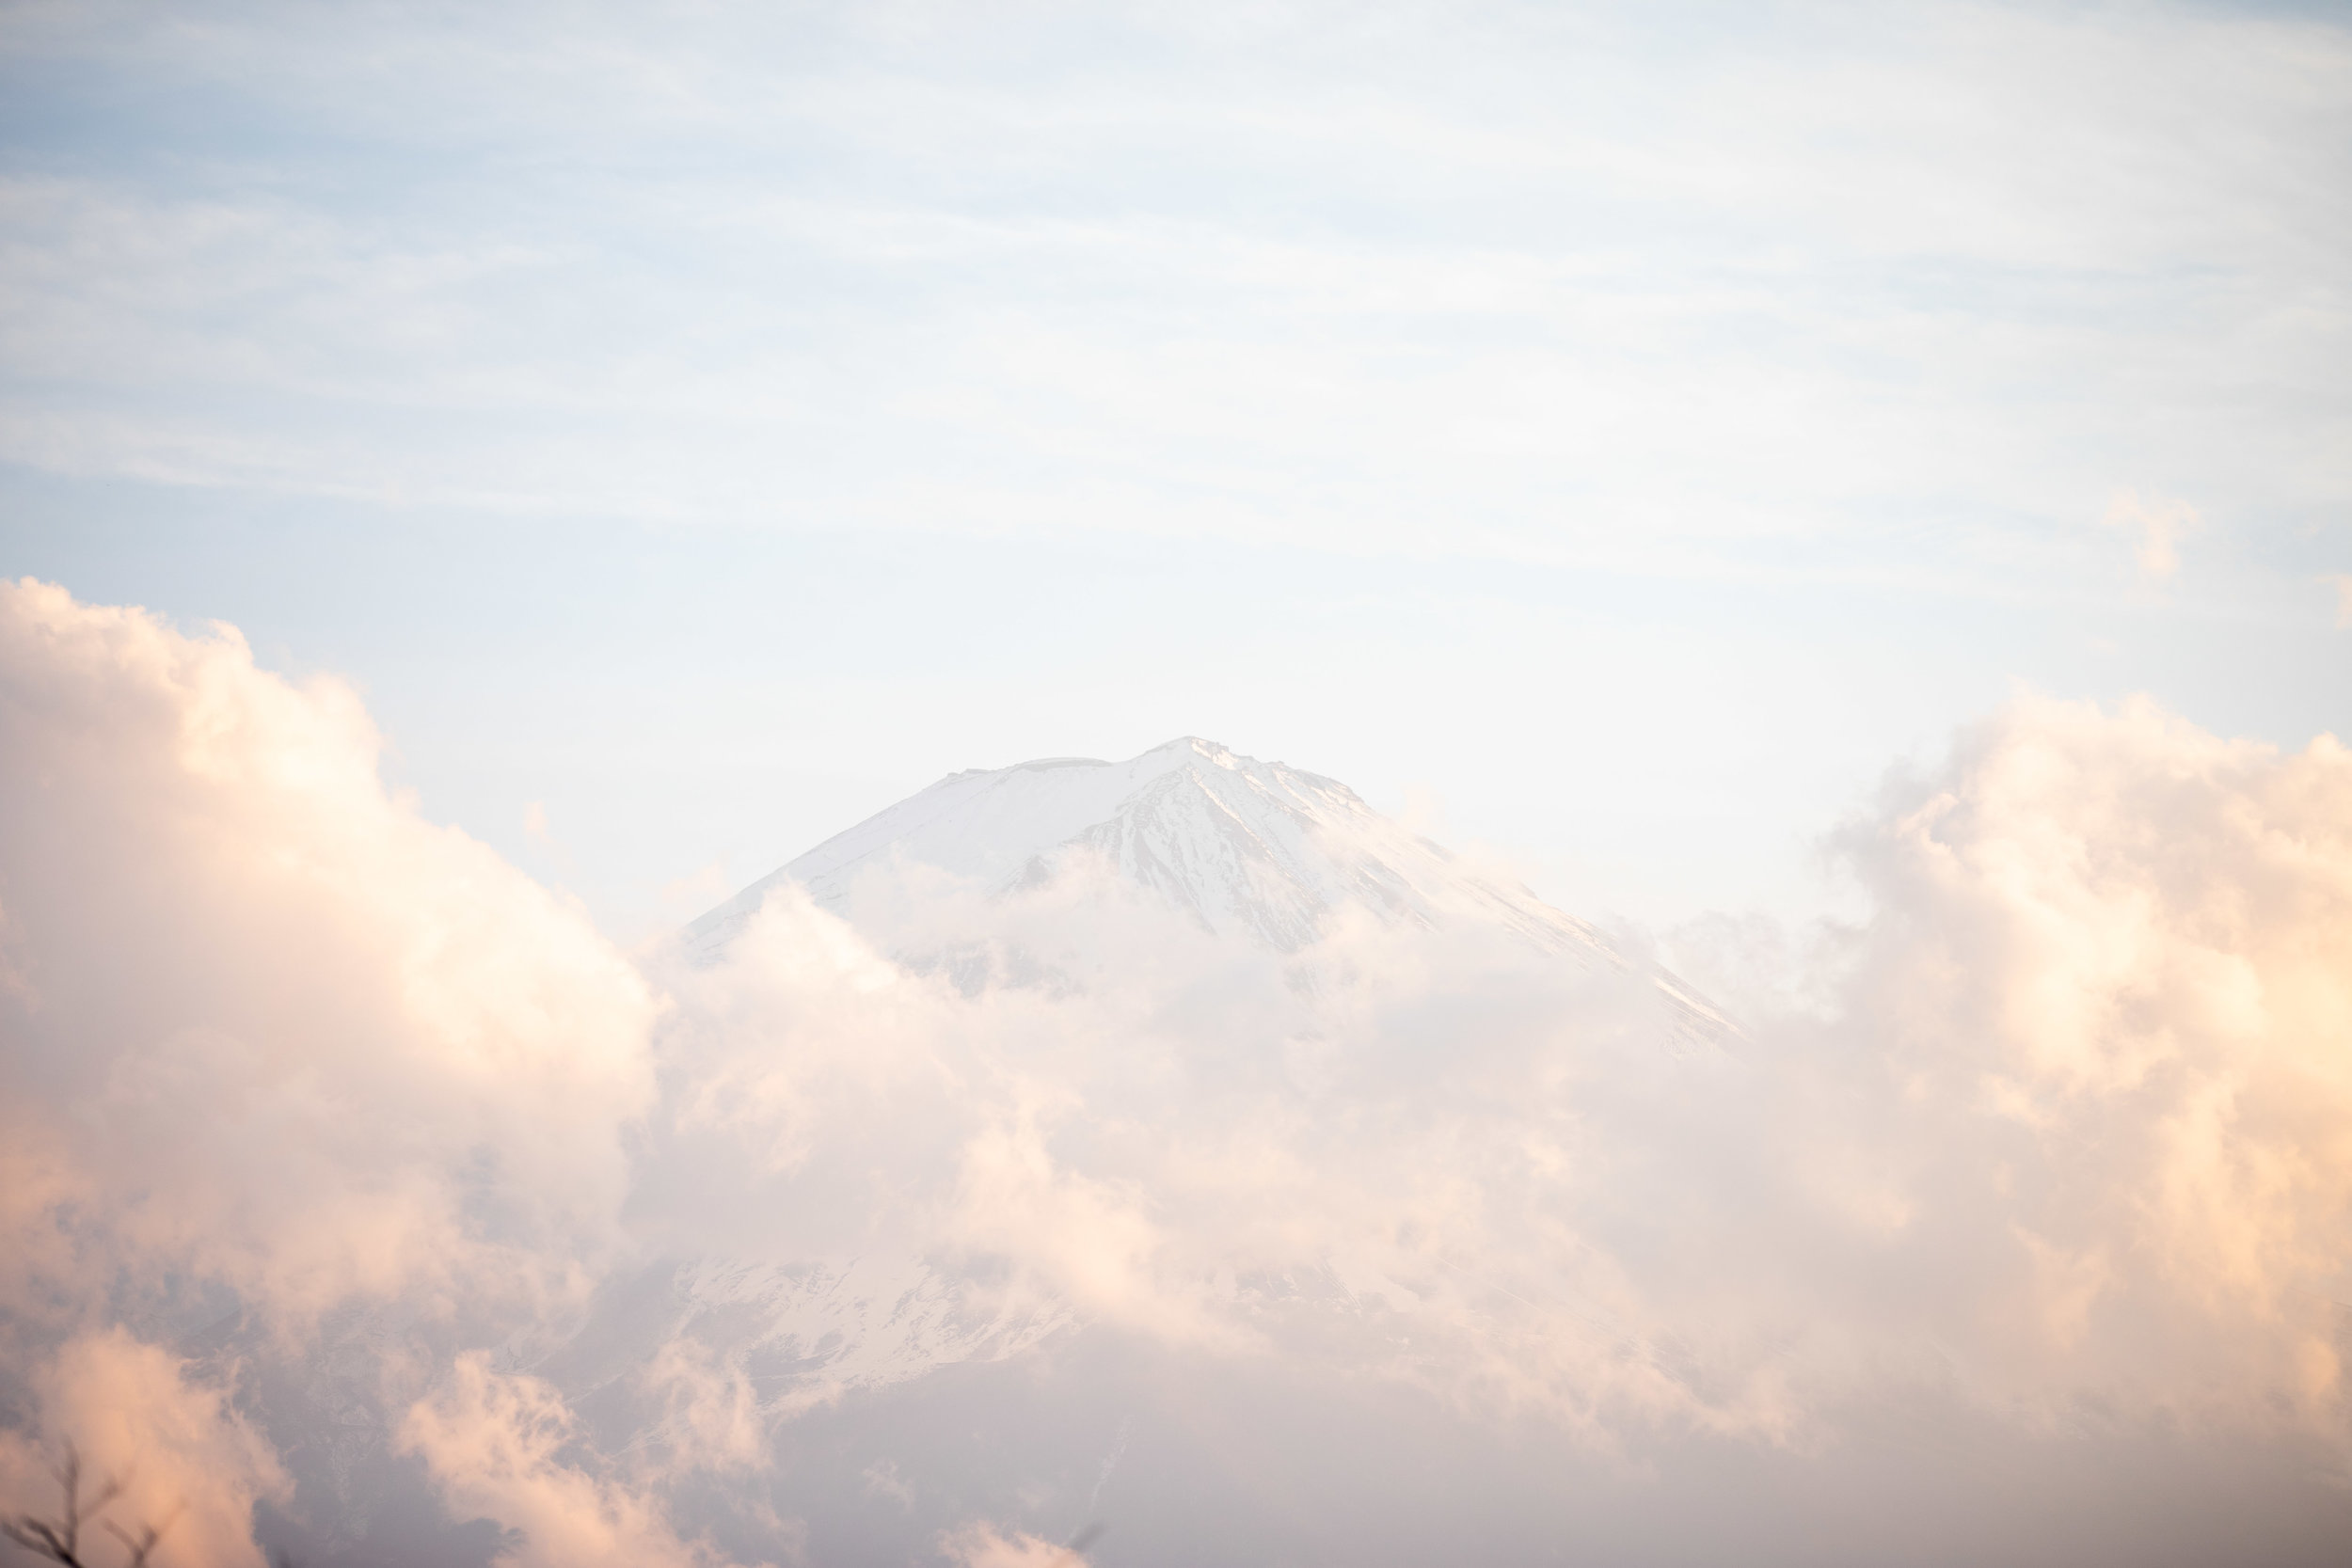 mt-fuji-photo-by-samantha-look.jpg